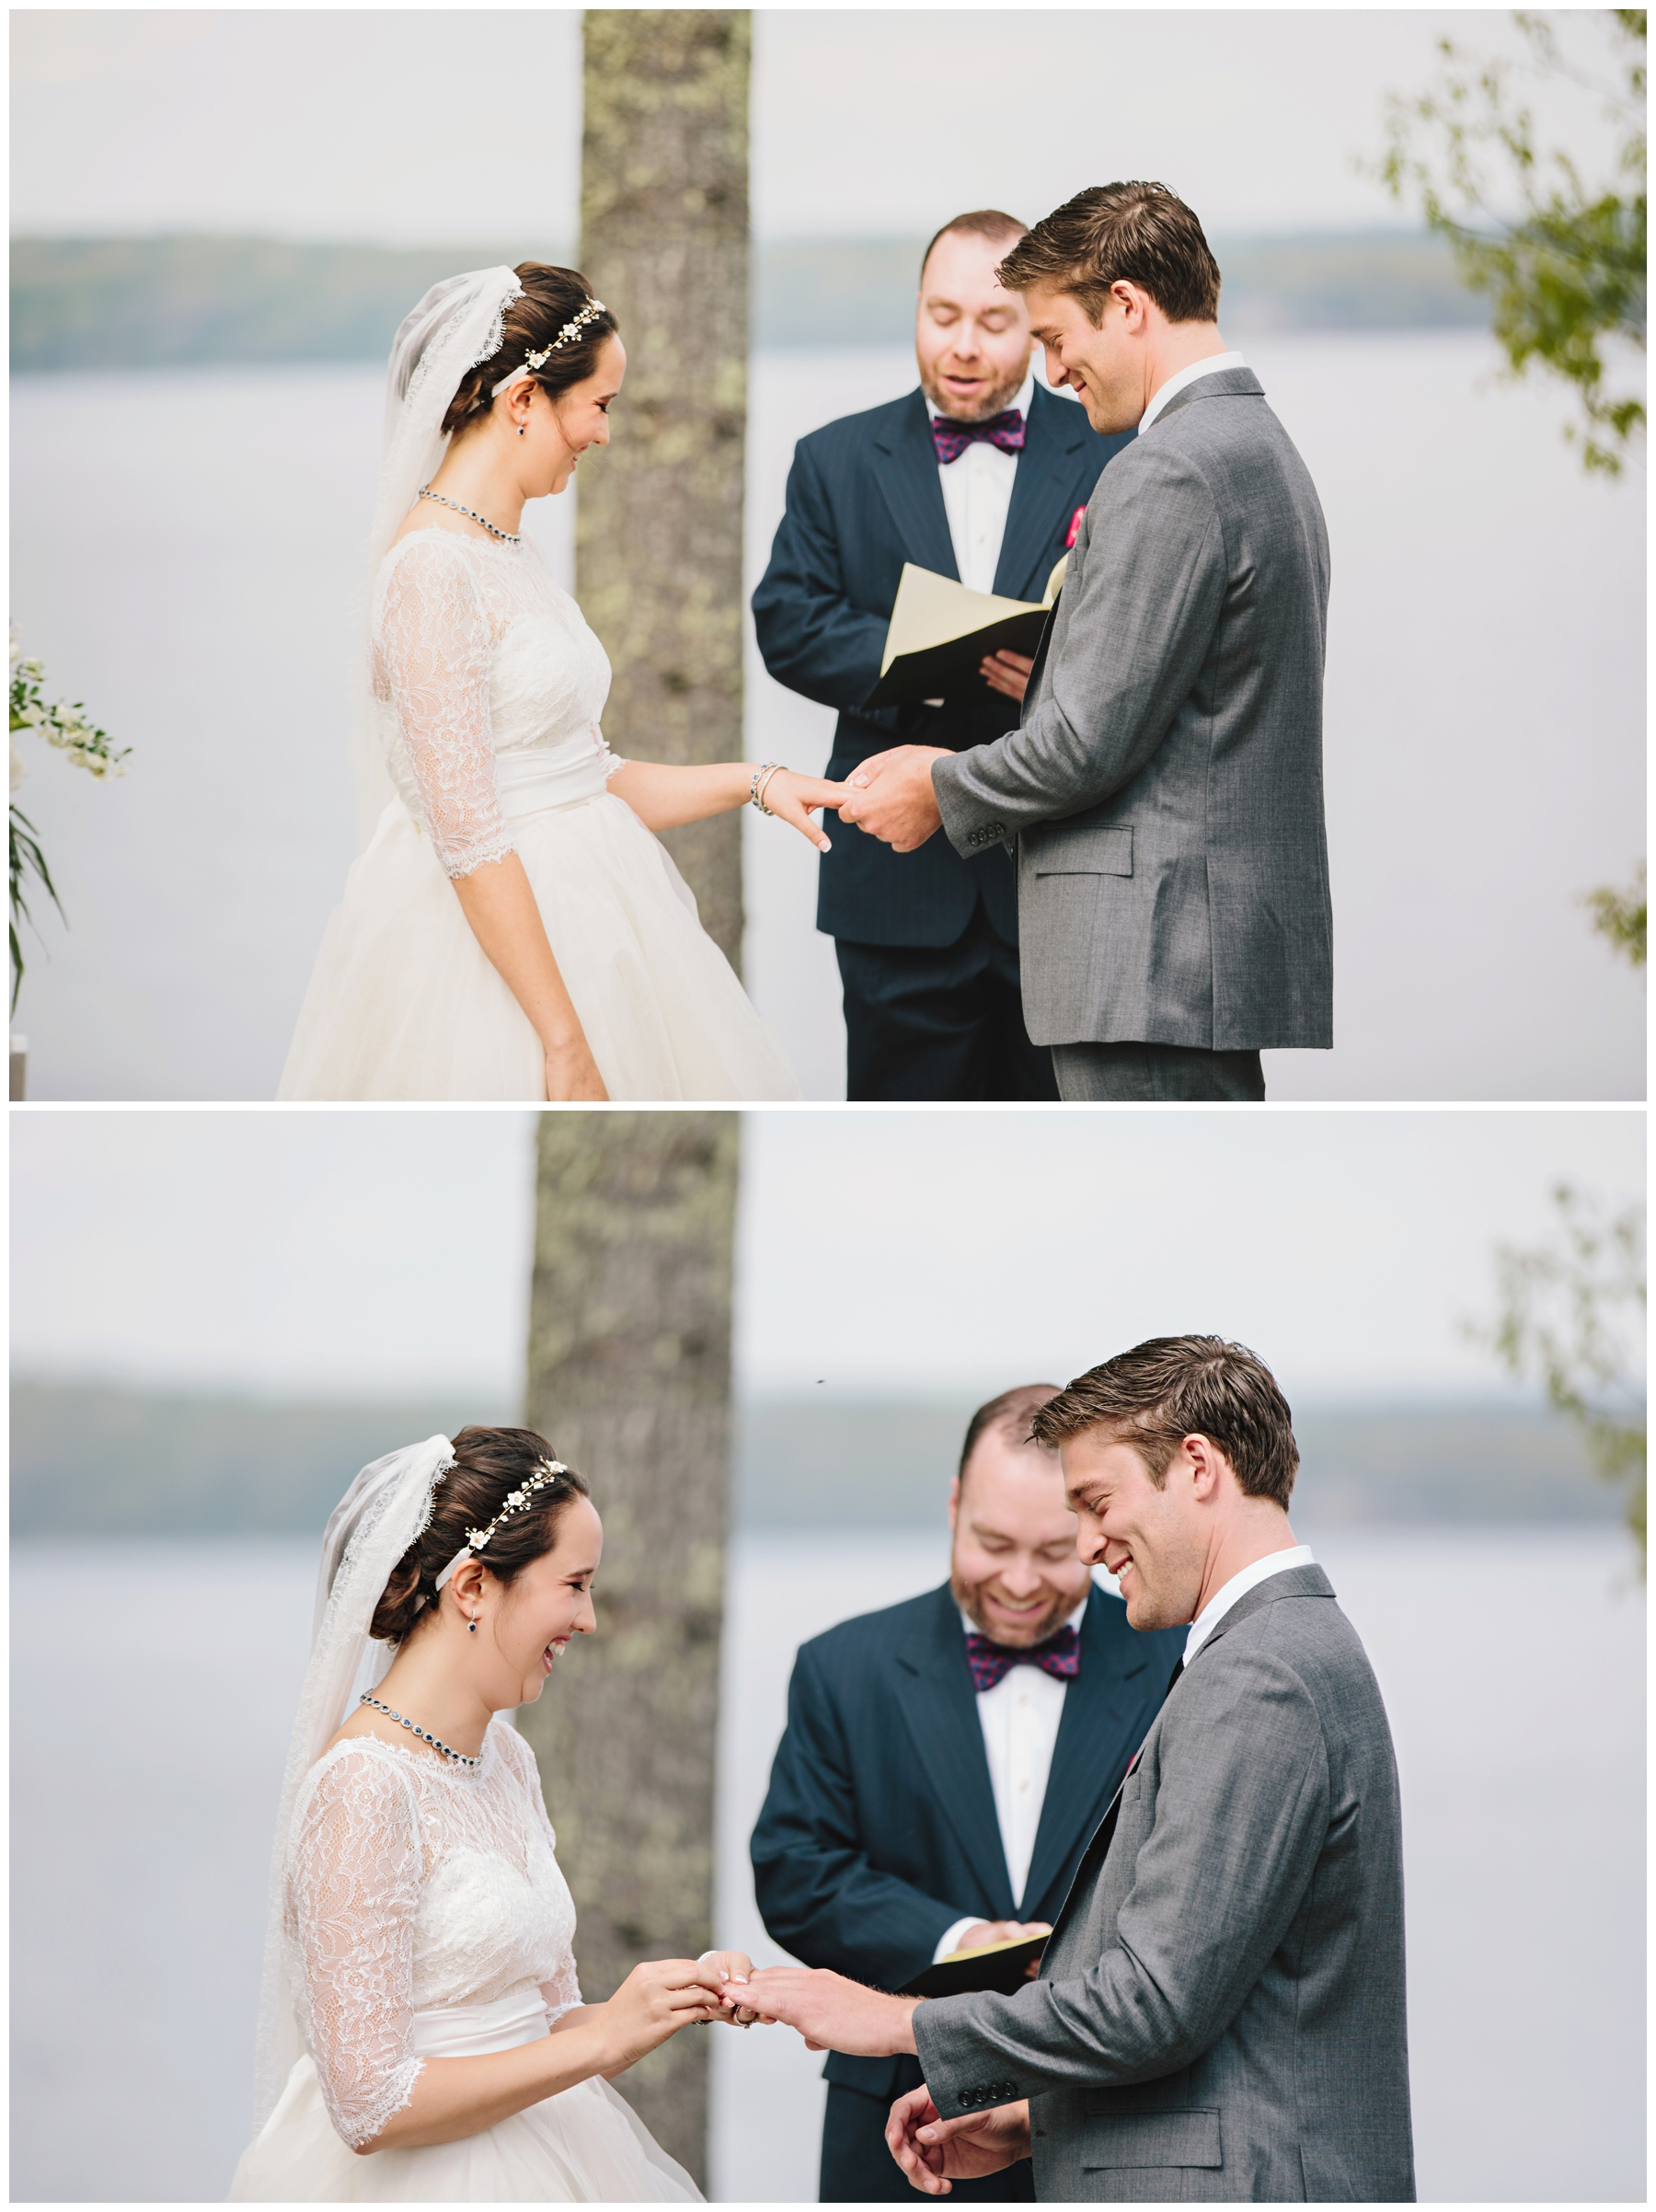 MaineWeddingPhotographer_FrenchsPoint_StocktonSprings_ocean_coast_NewEngland-037